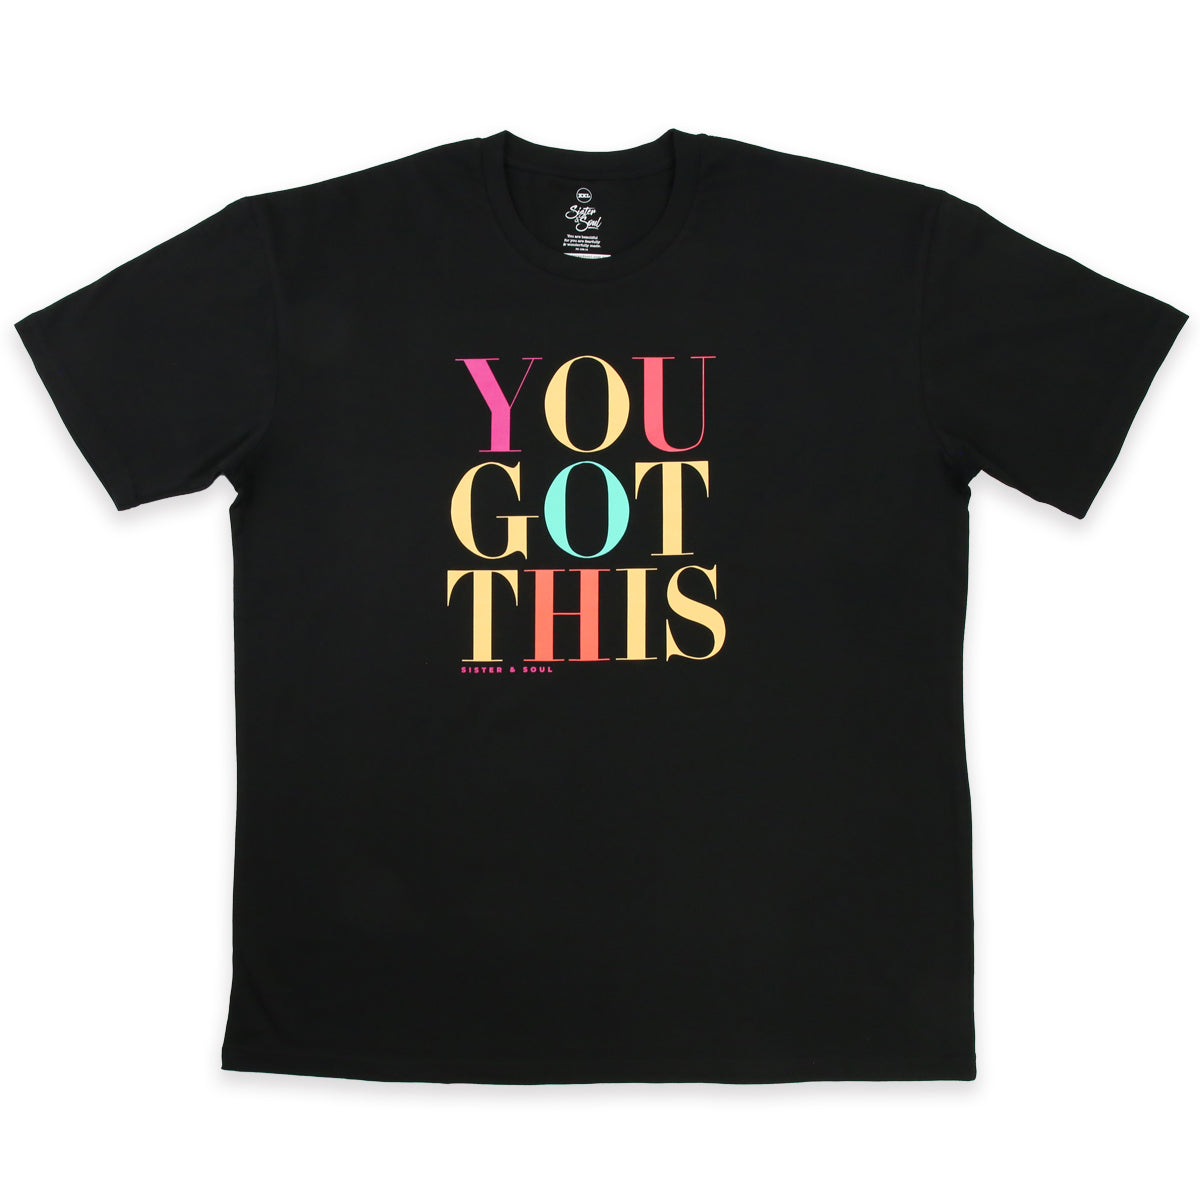 YOU GOT THIS - Plus Size Long Boxy Tee - Black with Colourful Print